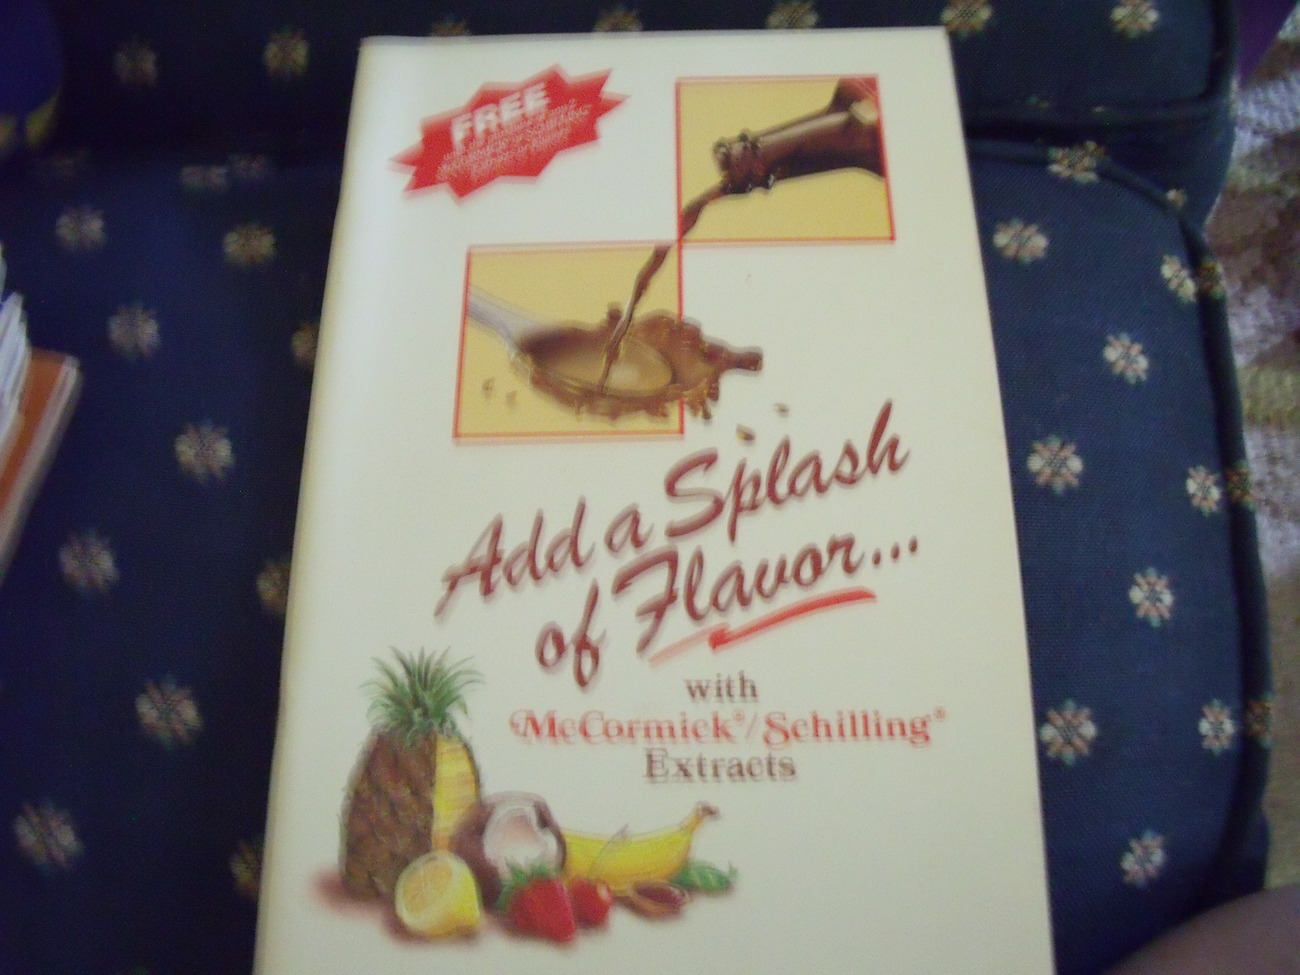 Add A Splash of Flavor With McCormick/Shilling Extracts circa 1989 - $6.00